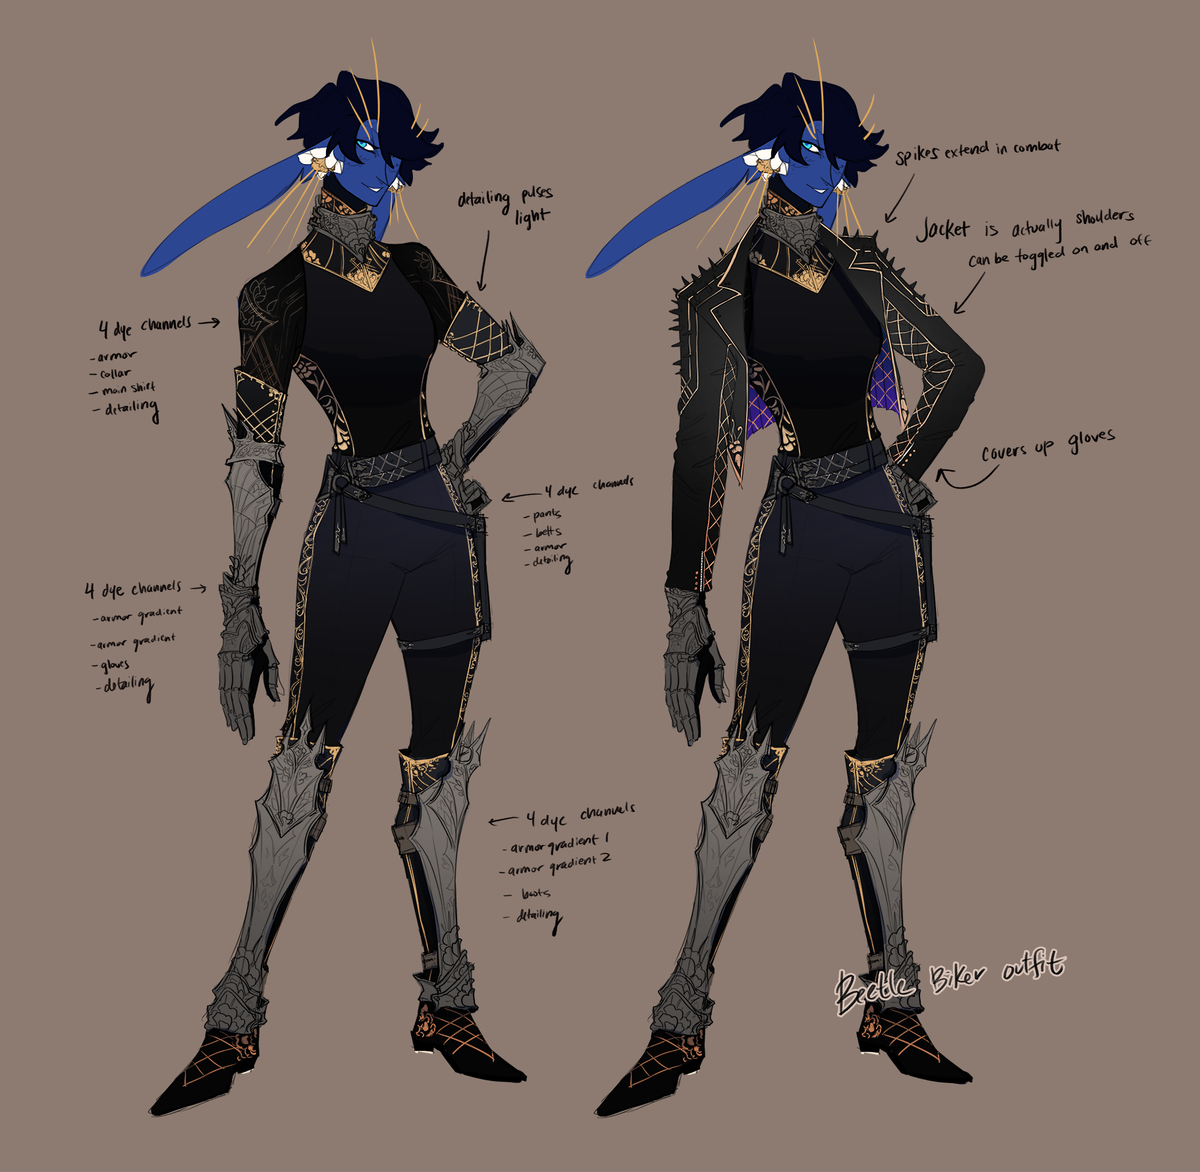 OK CONSIDER!!!! a motorcycle type outfit for the new beetle!! the jacket toggles on and off, and the sleeves and the back of the jacket have patches for your guild emblem #gw2 #guildwars2<br>http://pic.twitter.com/I6cr7iHBvN